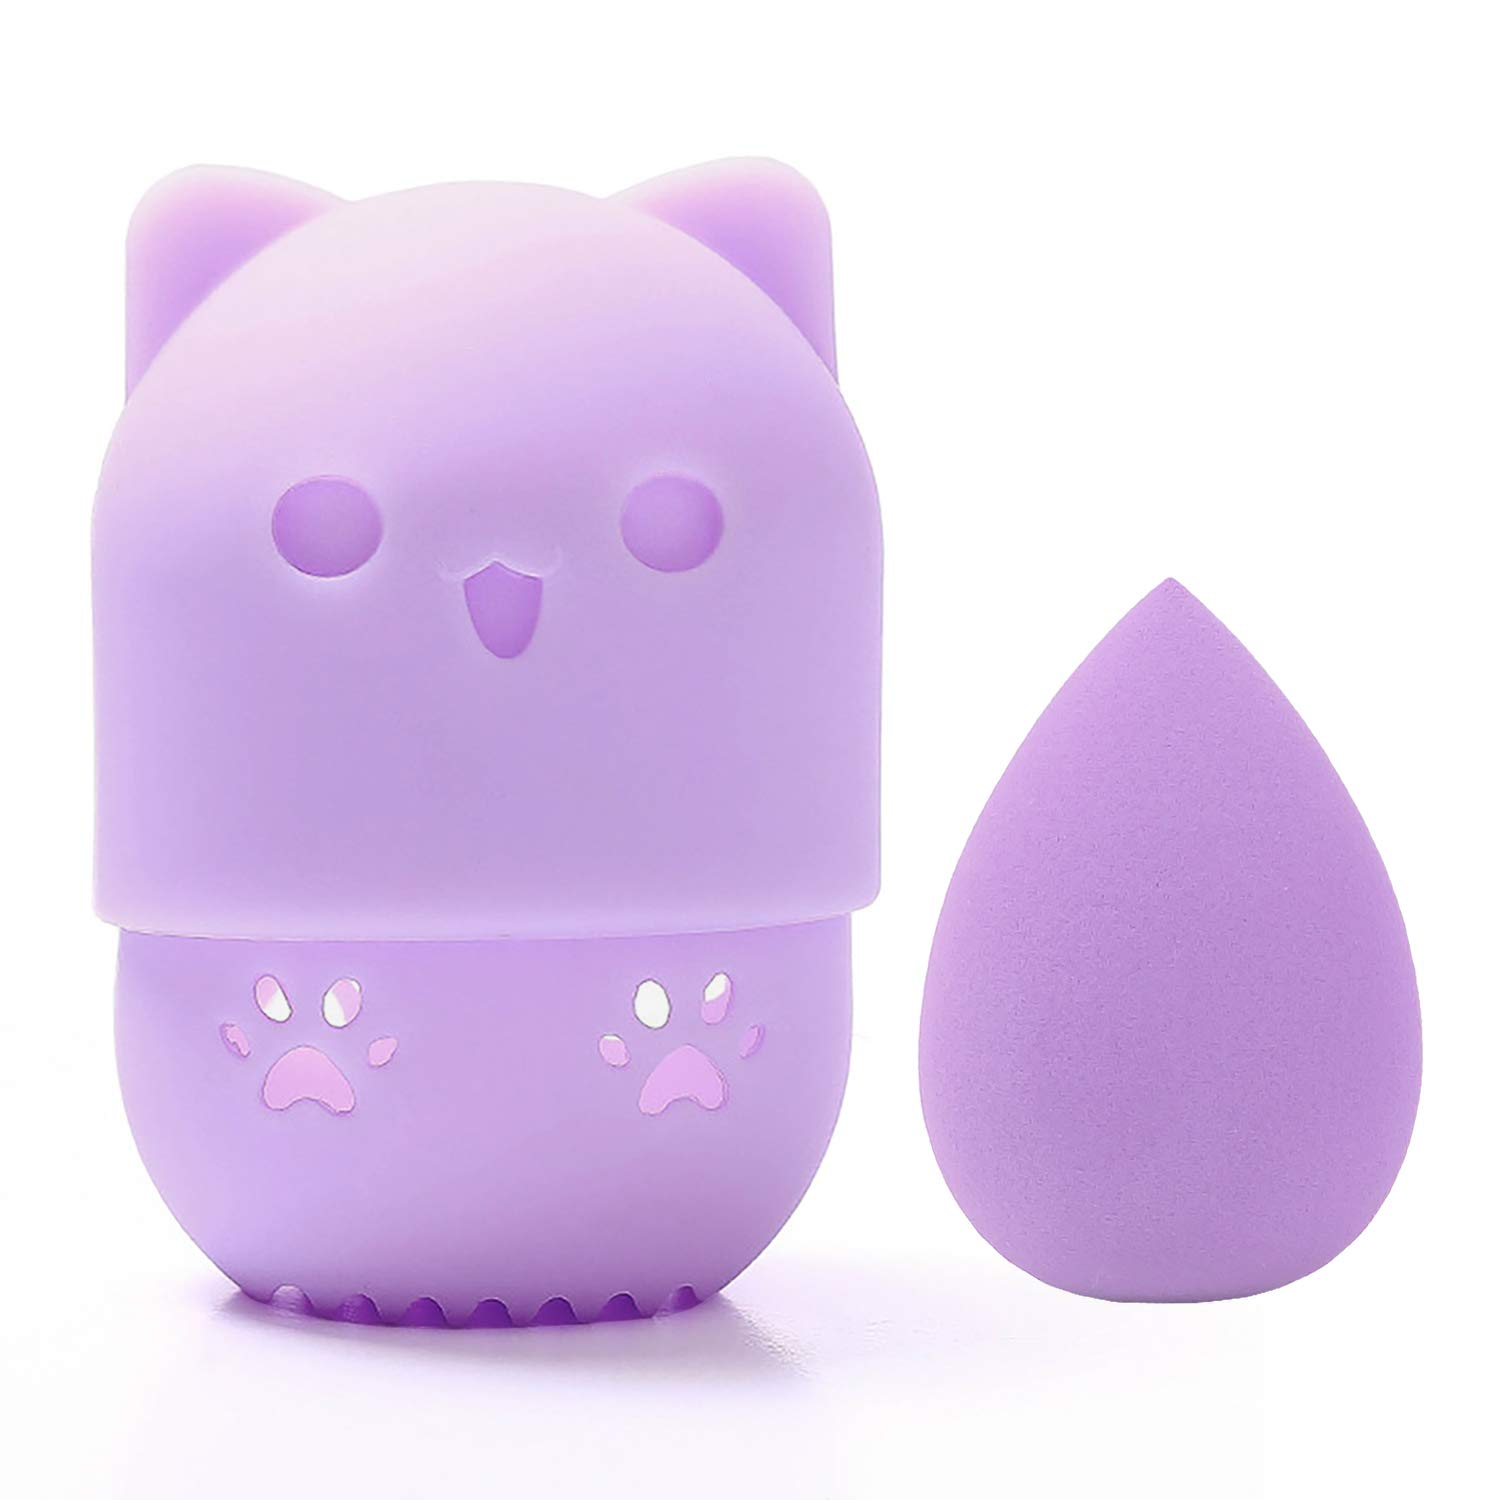 [Allure & Co.] Soft Makeup Sponge and Cute Cat Shaped Container Set - Travel Case for Beauty Blender (Purple)